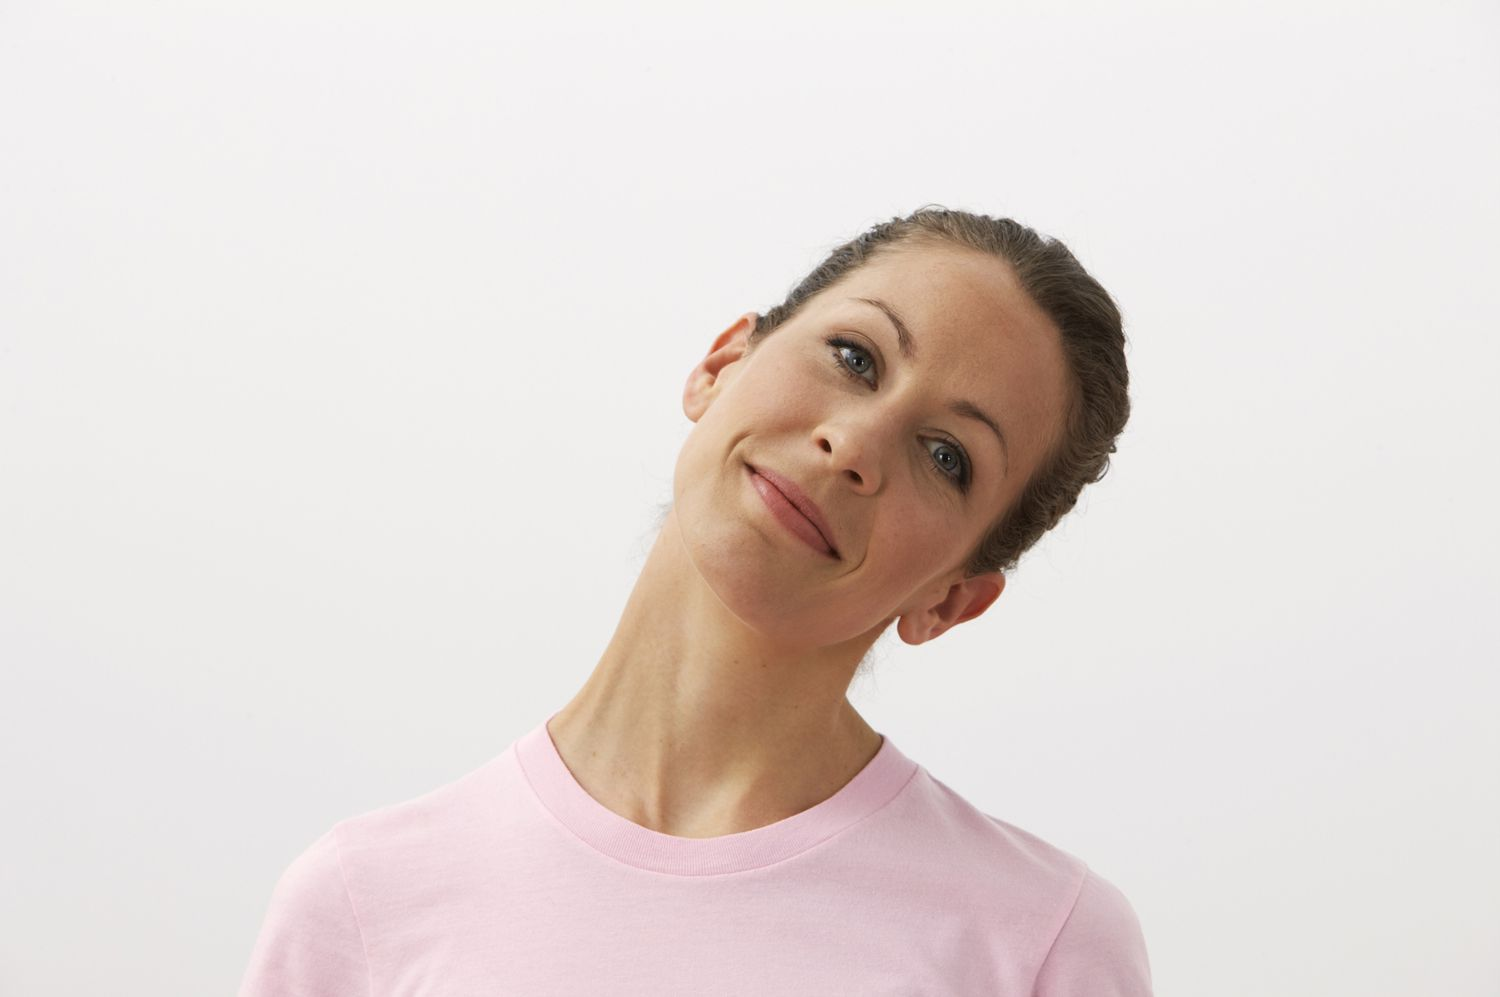 Neck rolls stretch the neck to prevent headaches